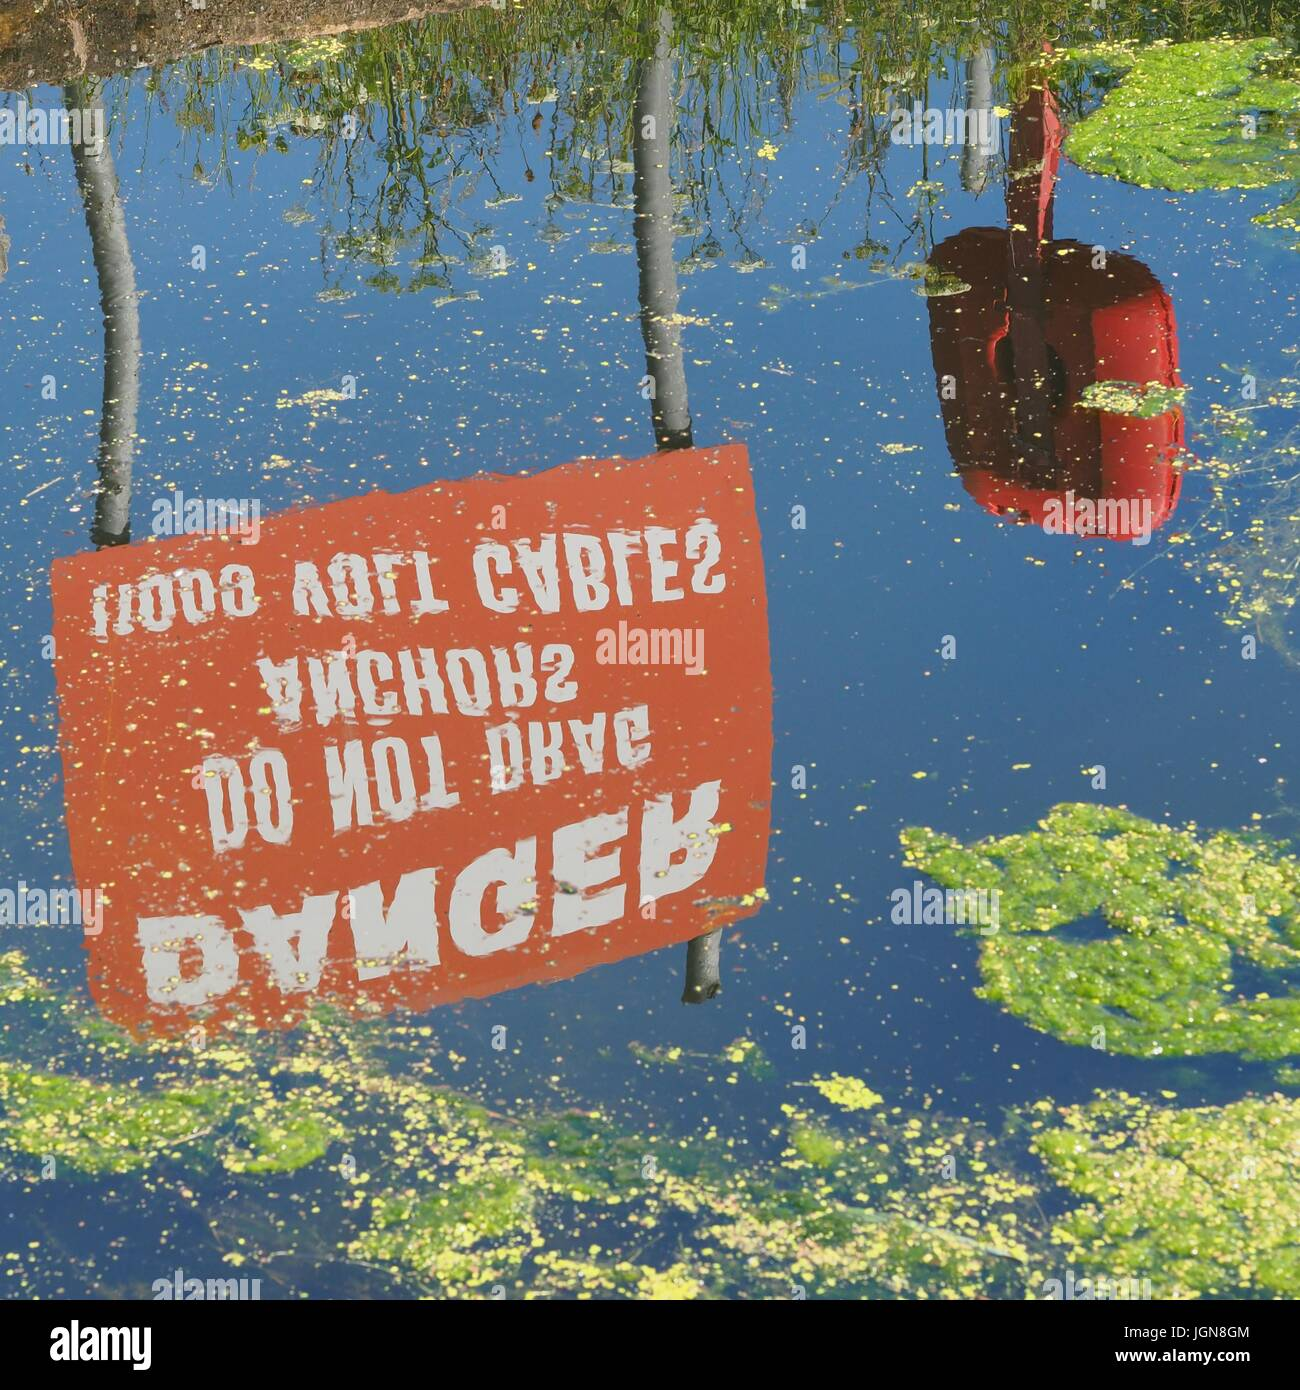 Danger do not drag anchor 11000 volt cable sign and life belt reflected in Exeter Canal Stock Photo